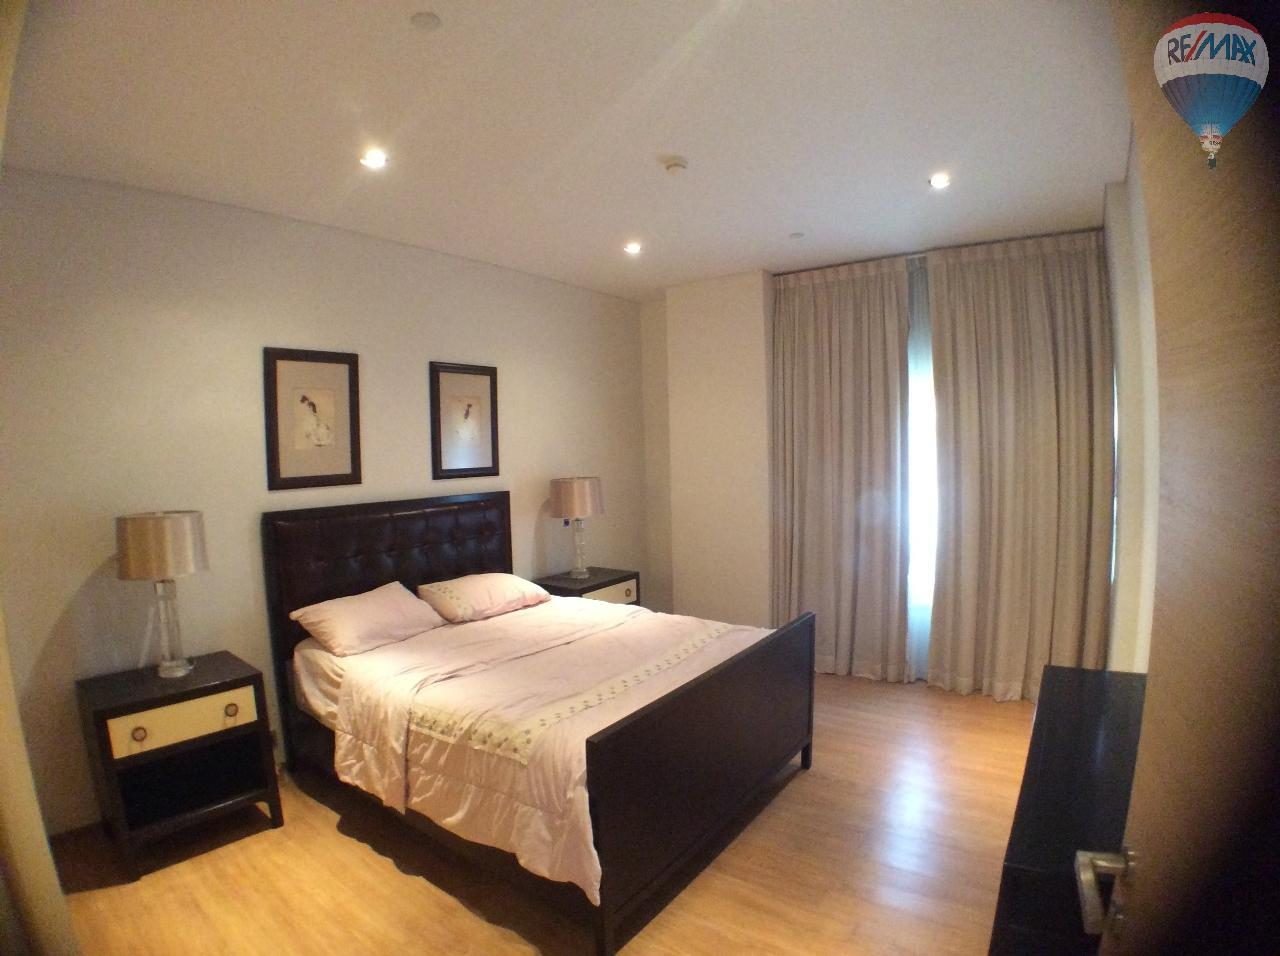 RE/MAX BestLife Agency's Saladaeng Residences 1 bedroom, Saladaeng BTS, Silom MRT, condo for rent 6